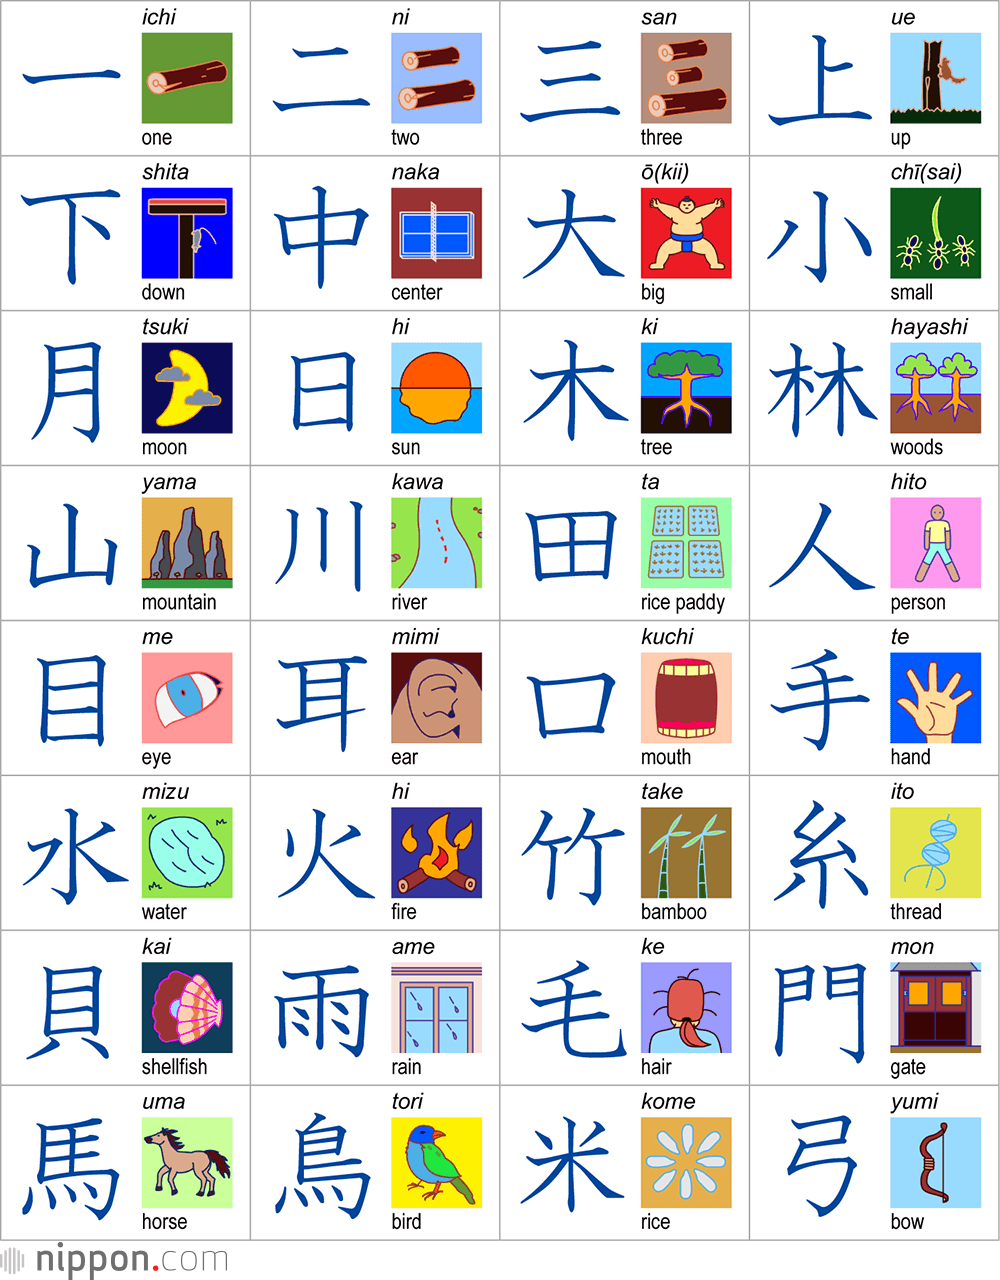 With thousands to learn, kanji can intimidate a newcomer to the Japanese language. But you can discover the appeal of kanji by learning a few basic examples.